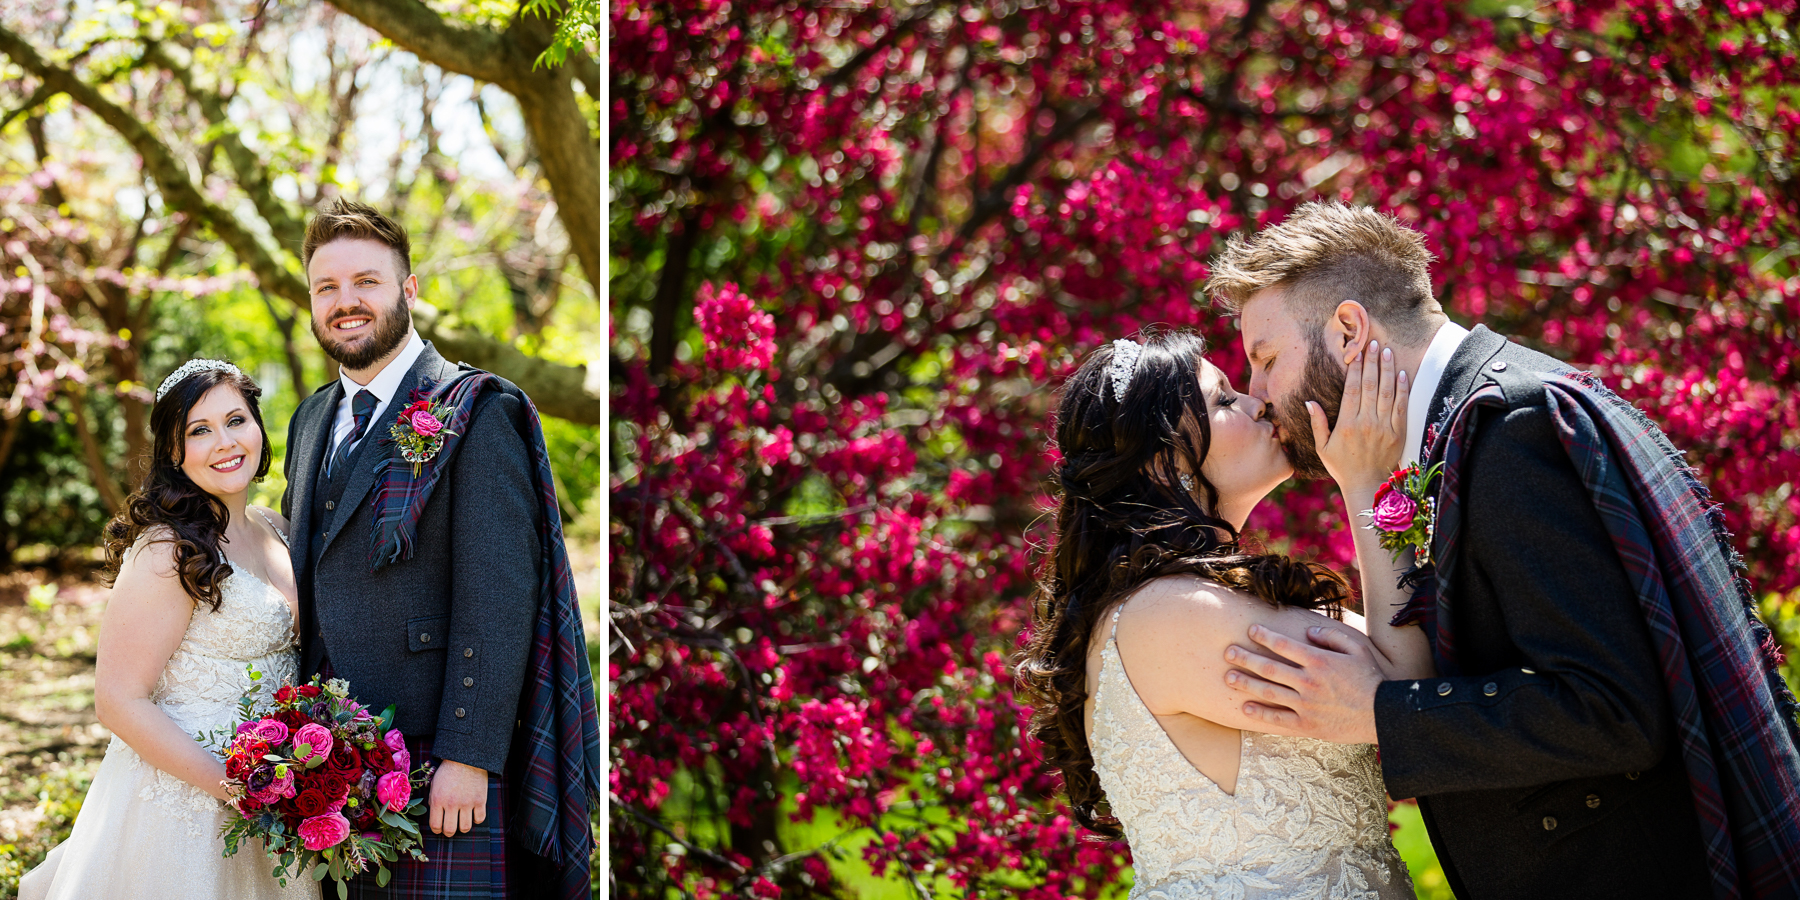 Wedding Portraits at Luthy Botanical Garden in Peoria Illinois